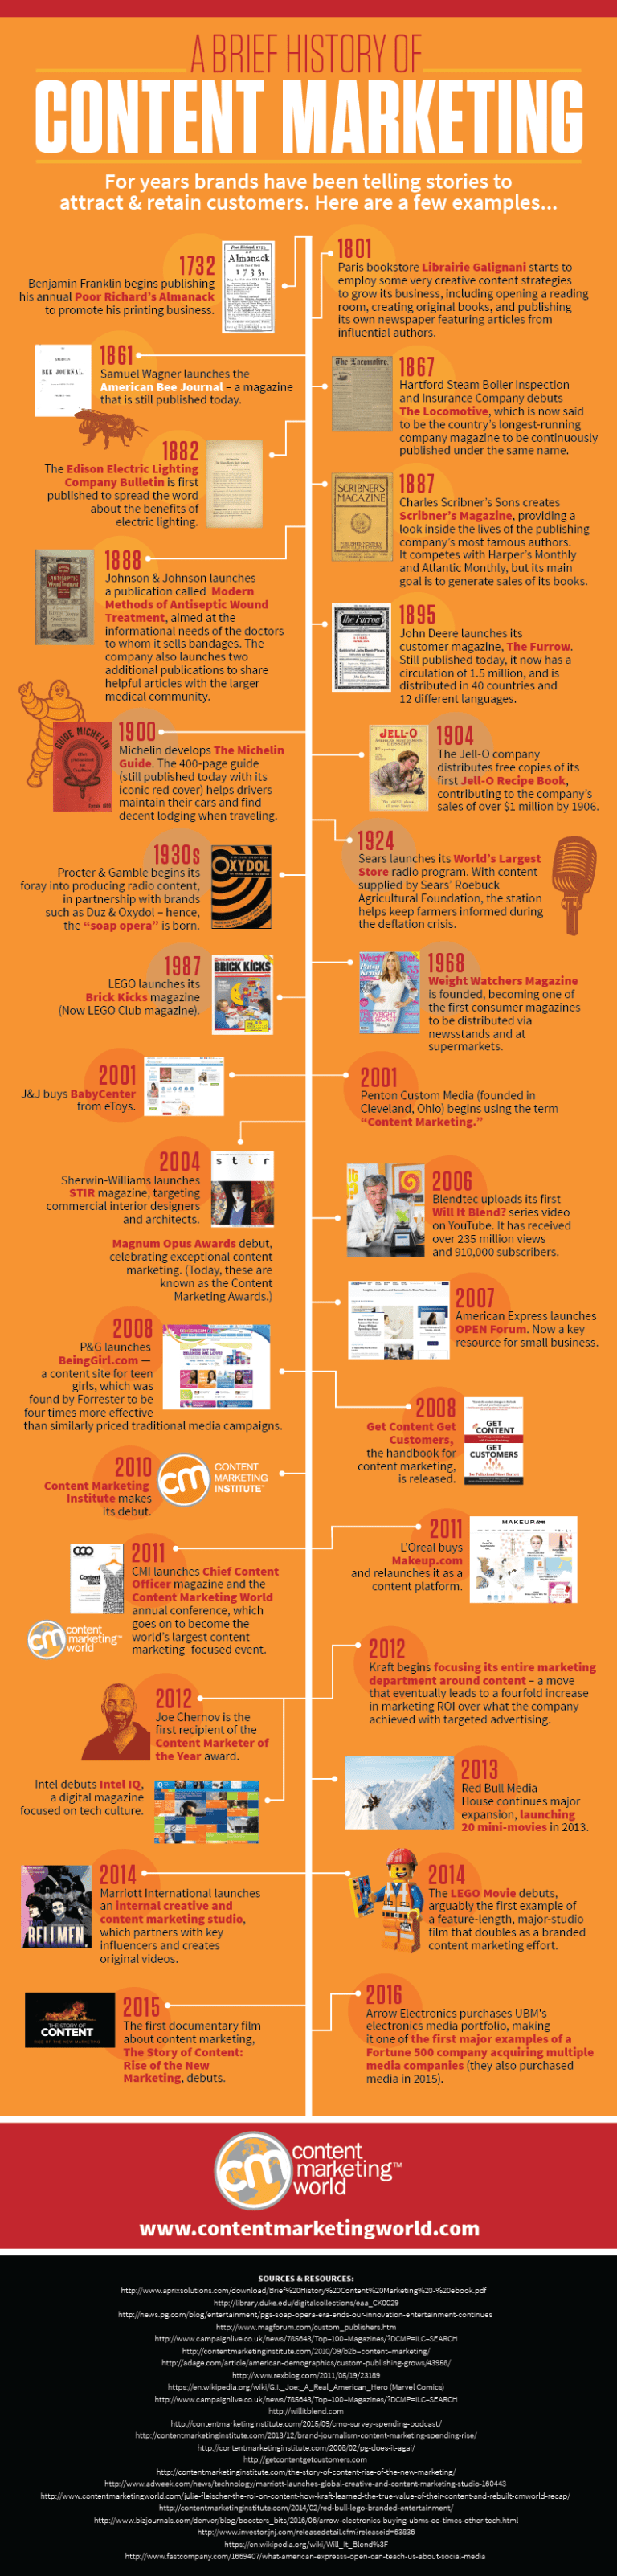 A Brief History of Content Marketing by the Content Marketing Institute